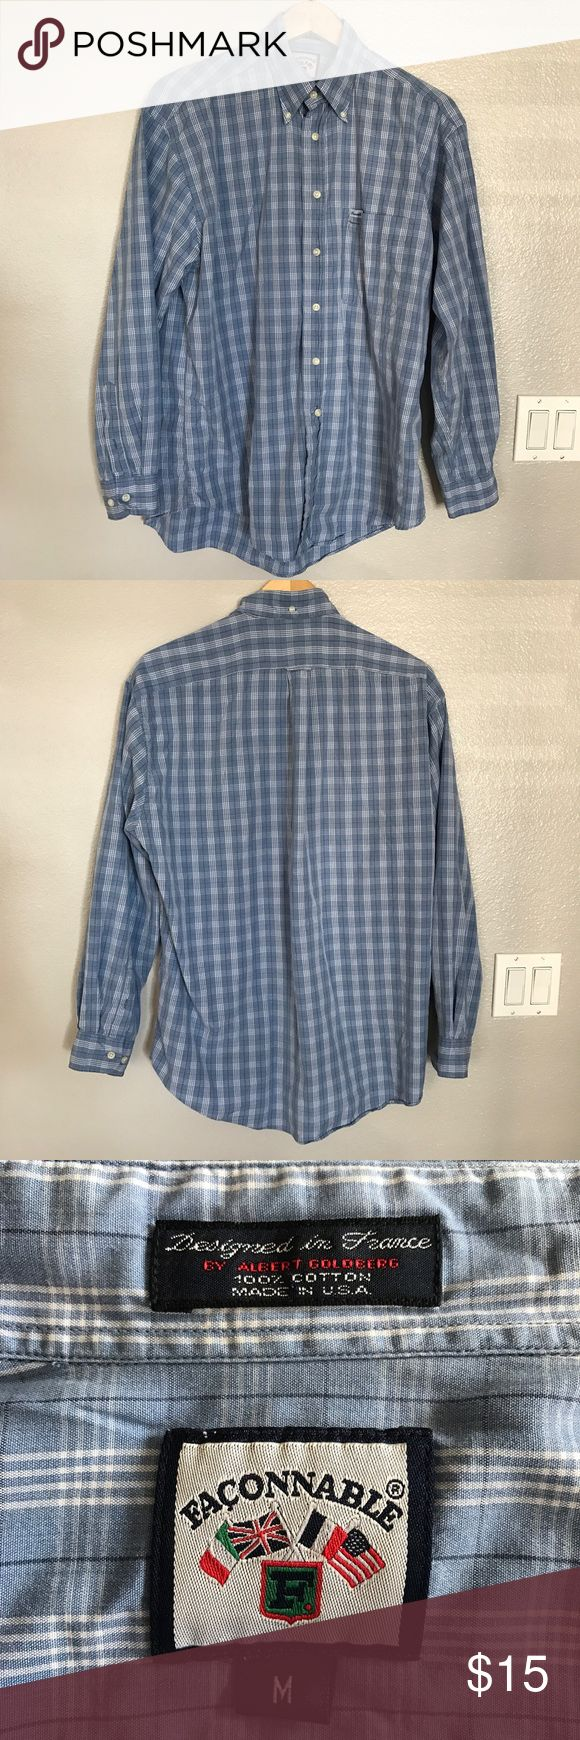 Façonnable from Nordstrom Dress Shirt Made in USA Façonnable's original fit, medium, blue dress shirt.  100% cotton.  Designed in France 🇫🇷 by Albert Goldberg.  Made in U.S.A. 🇺🇸Excellent Condition, Smoke-free, Pet-free, Fast Shipper, ⭐️⭐️⭐️⭐️⭐️ Top-Rated Seller, Create a Poshmark account with code GWXMV for $5 off 🛍 Bundle to save even more‼️ Façonnable Shirts Dress Shirts